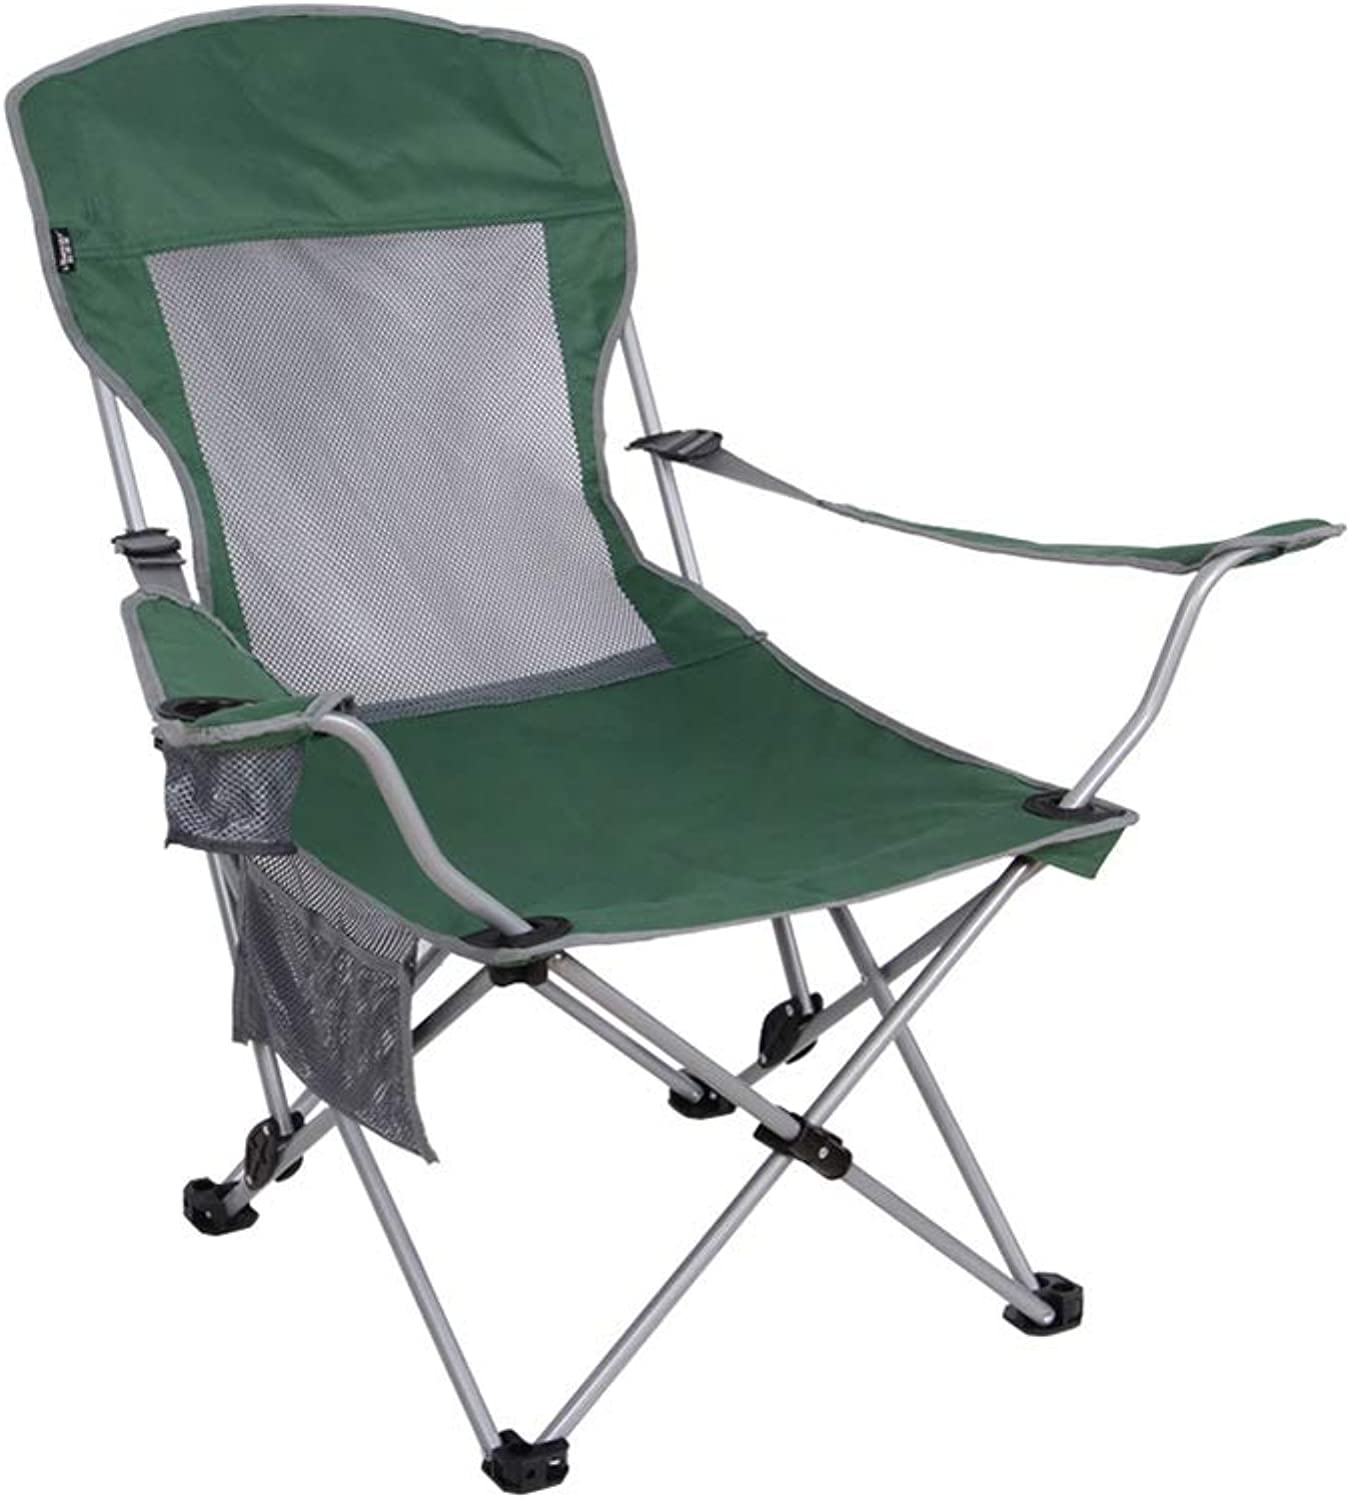 HPLL Folding Camp Chair Camping Deck Chair, Multi-Function Zero Gravity Folding Camping Chair for Lunch Break Lazy Couch Backrest Leisure Chair Fishing Picnic Beach Garden Patio Chair Reclining Chair